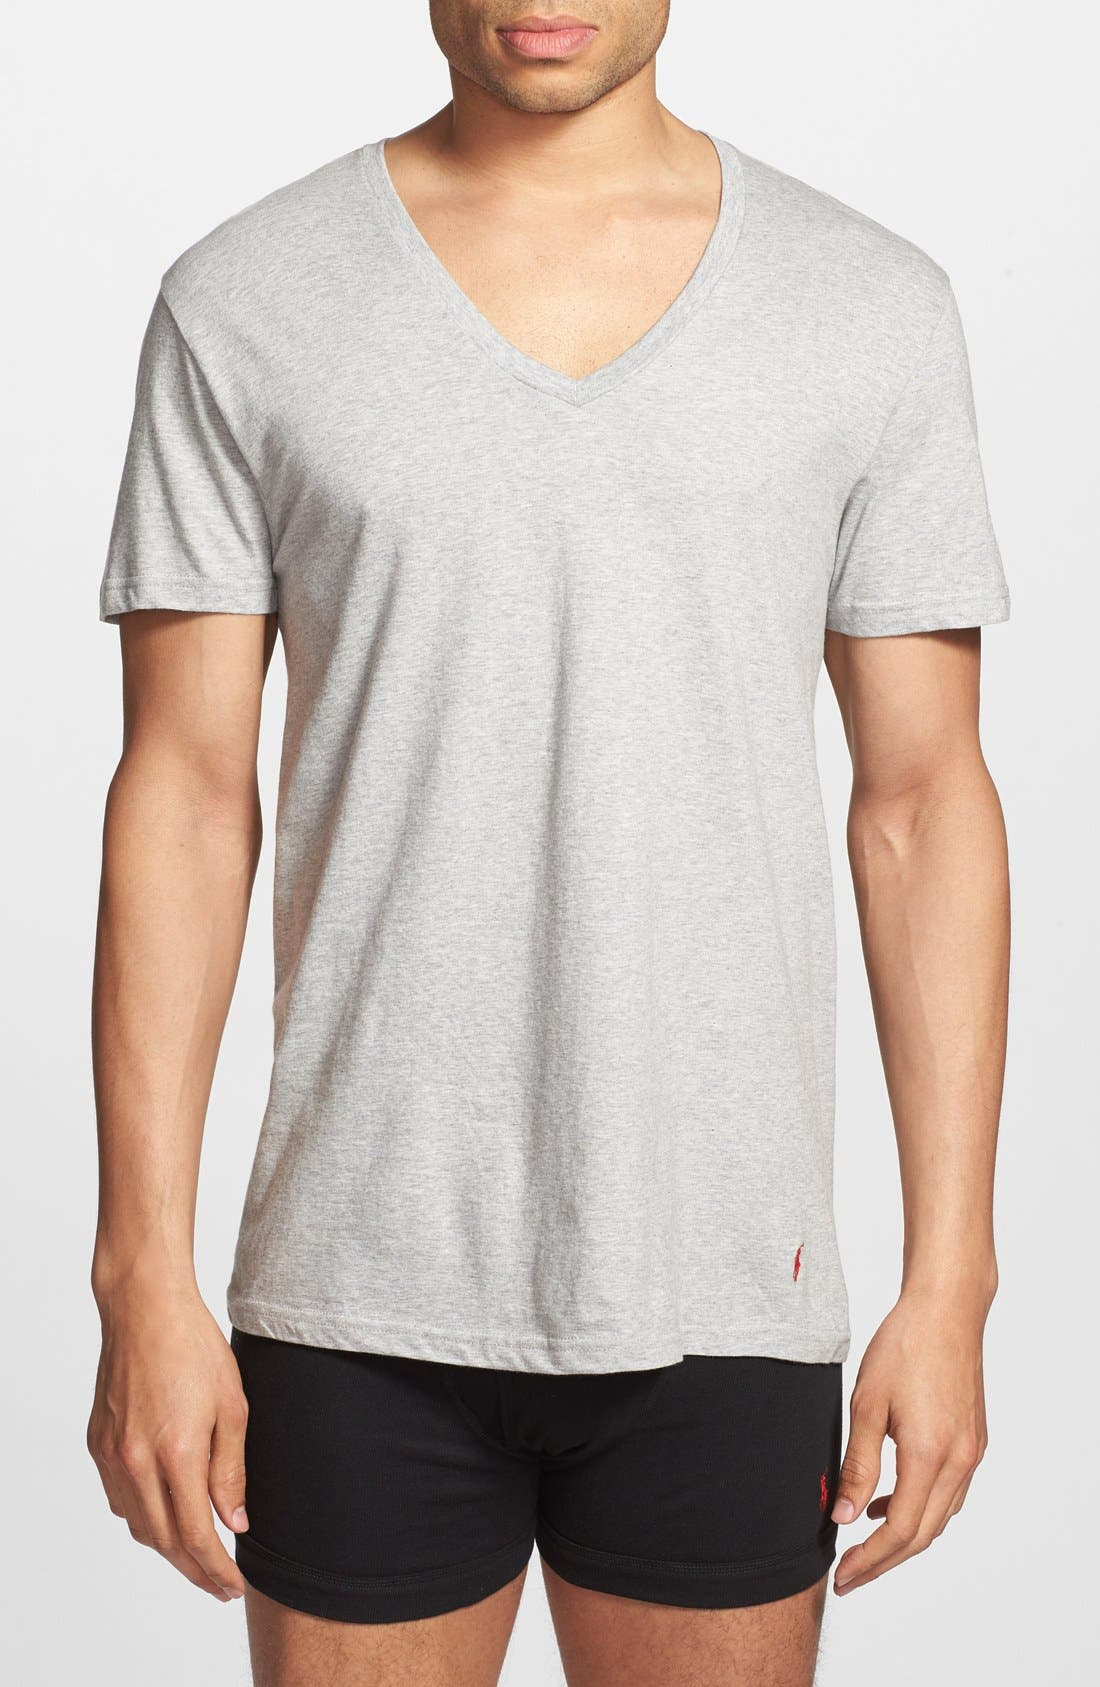 3-Pack V-Neck T-Shirts,                         Main,                         color, Black/ Grey/ Charcoal